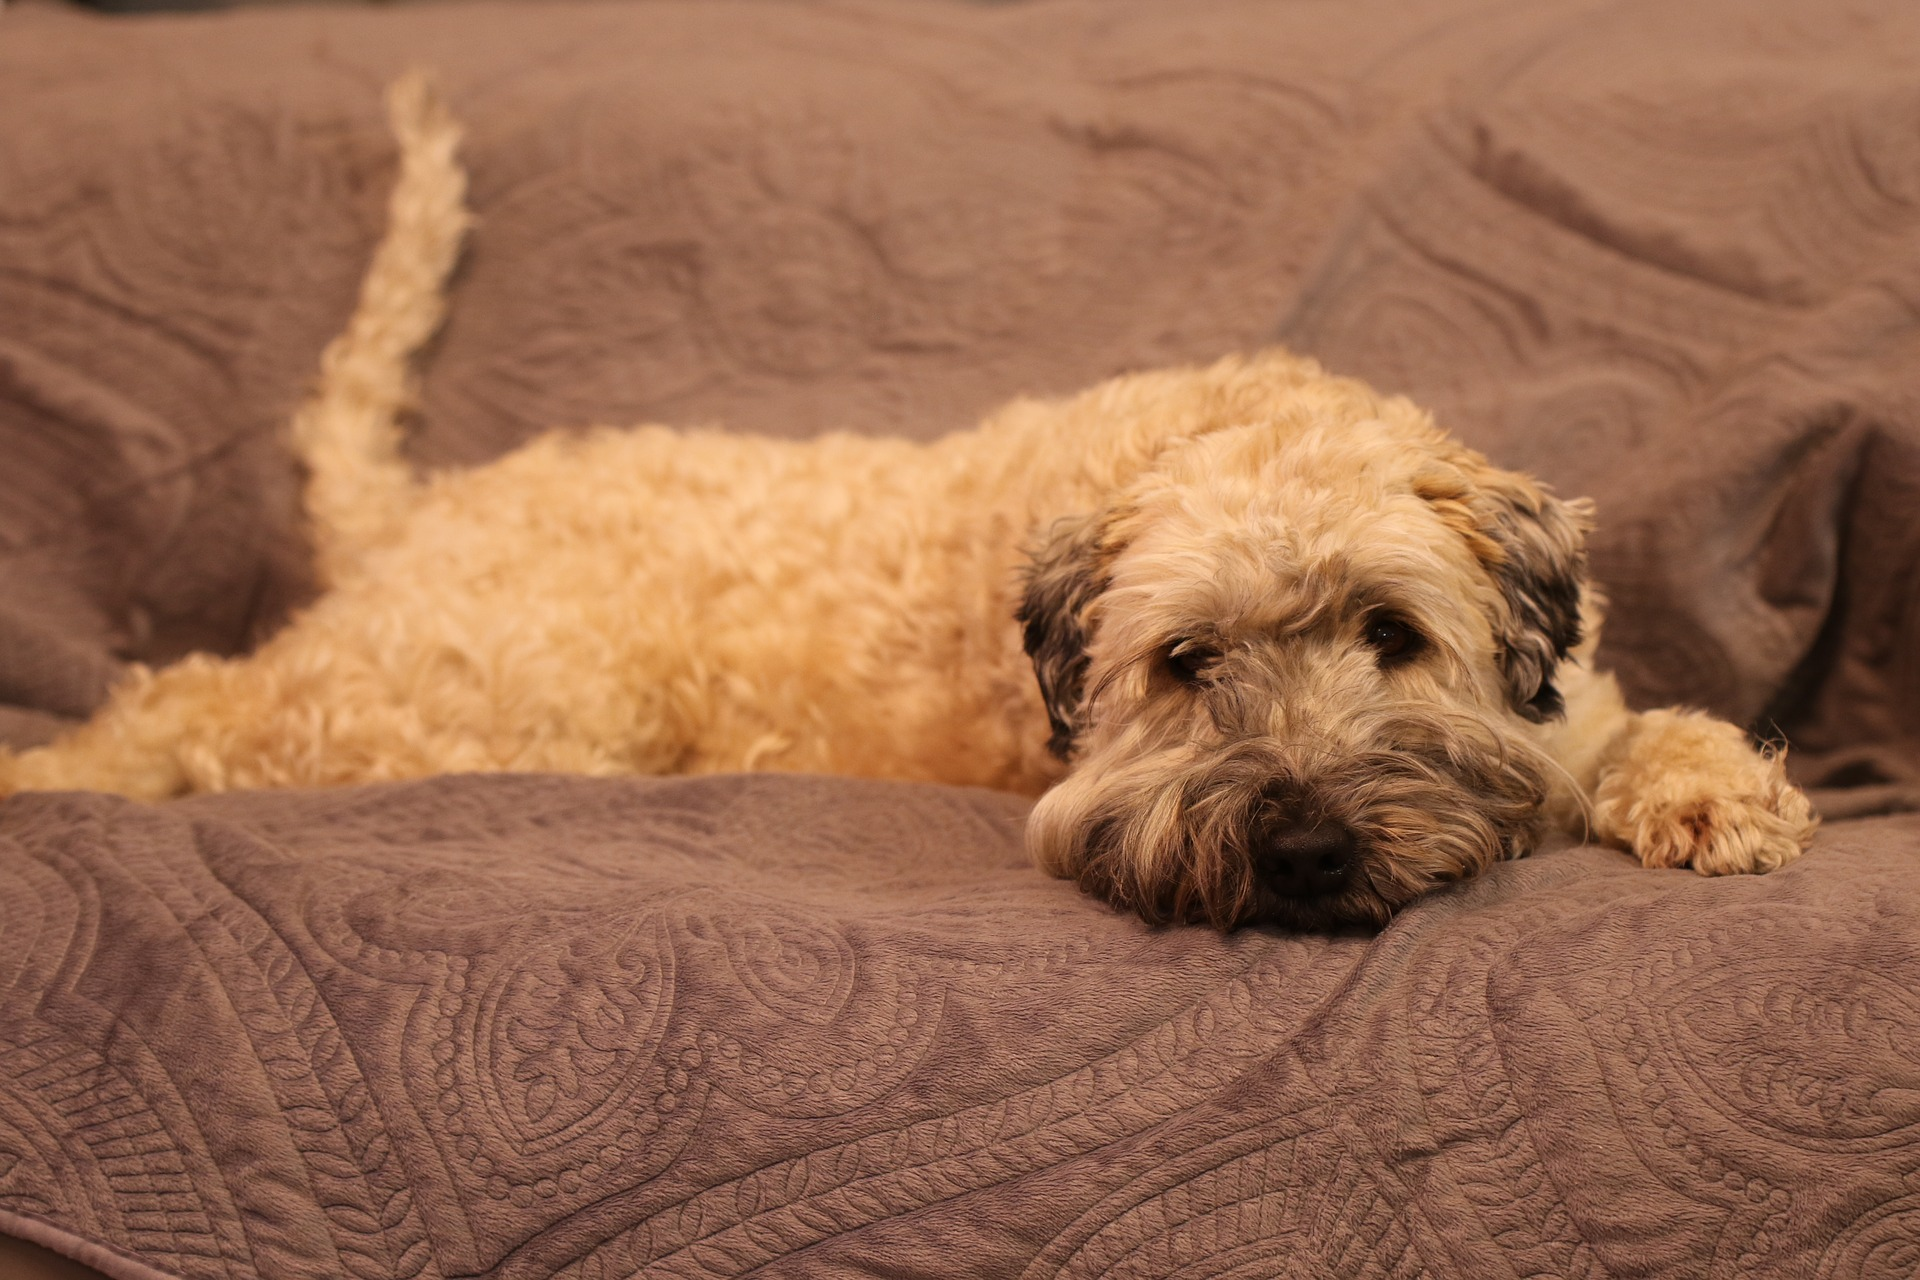 Tan dog lounging on couch cover.